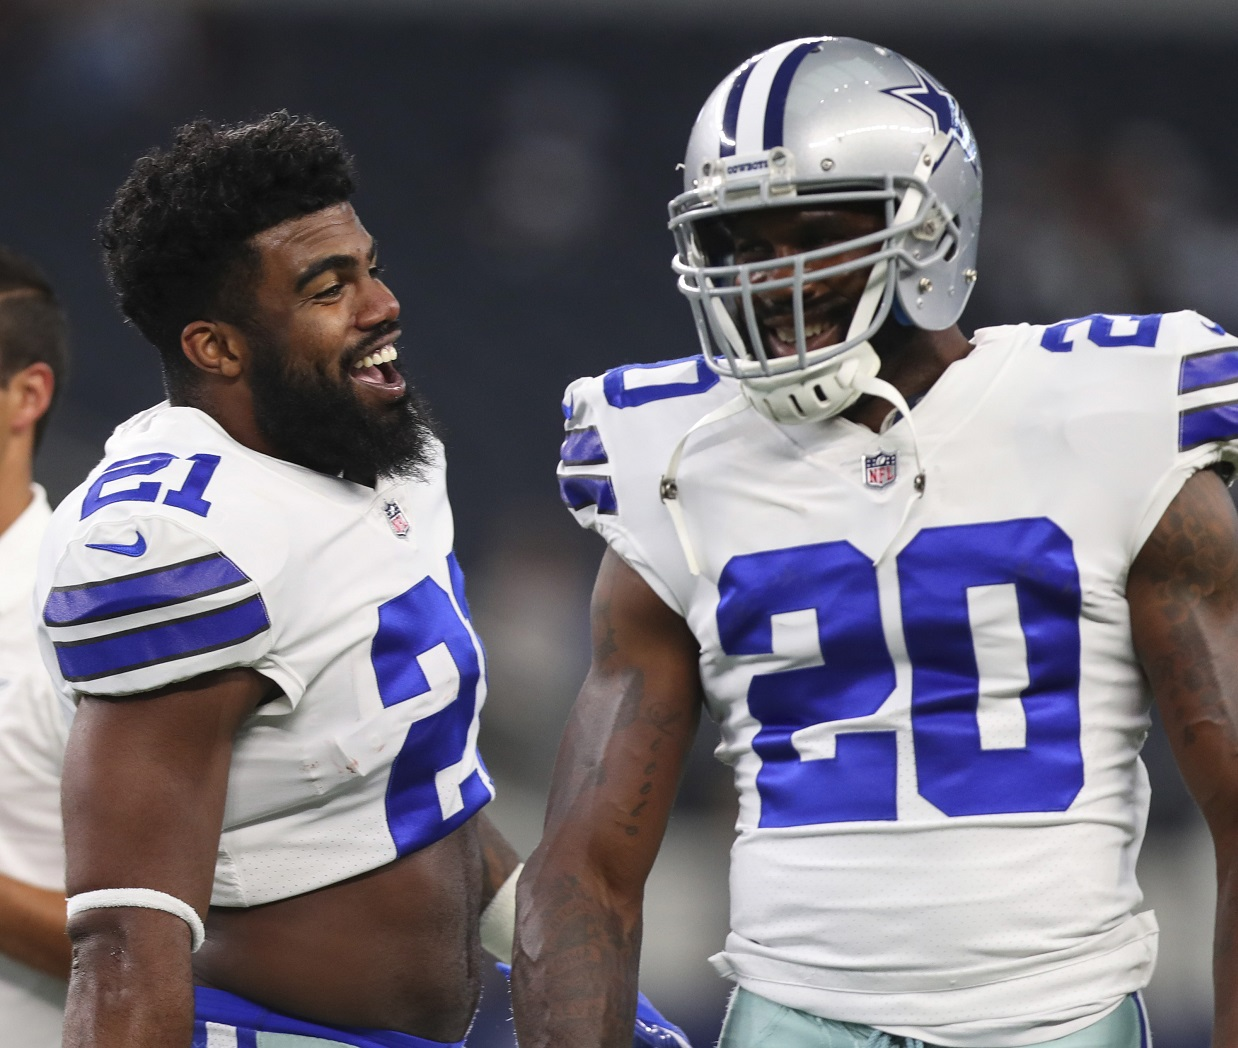 NFL Releases Statement, Says Ezekiel Elliott Suspension 'Remains In Place'